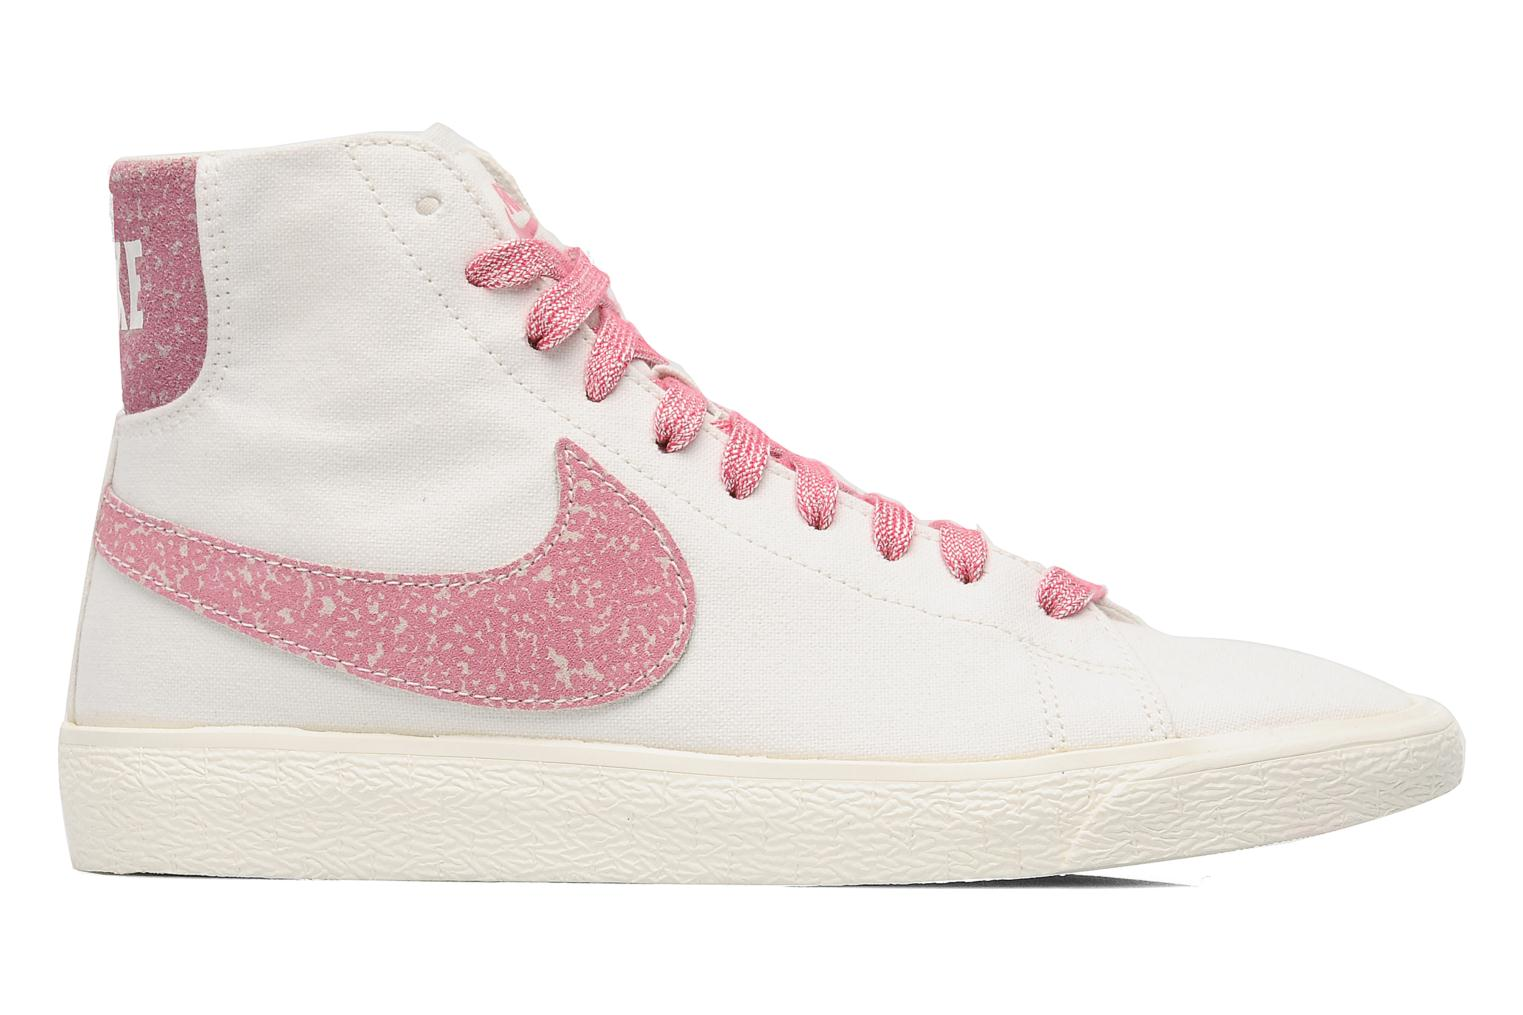 Wmns Blazer Mid Decon Cvs Sail/Pink Force